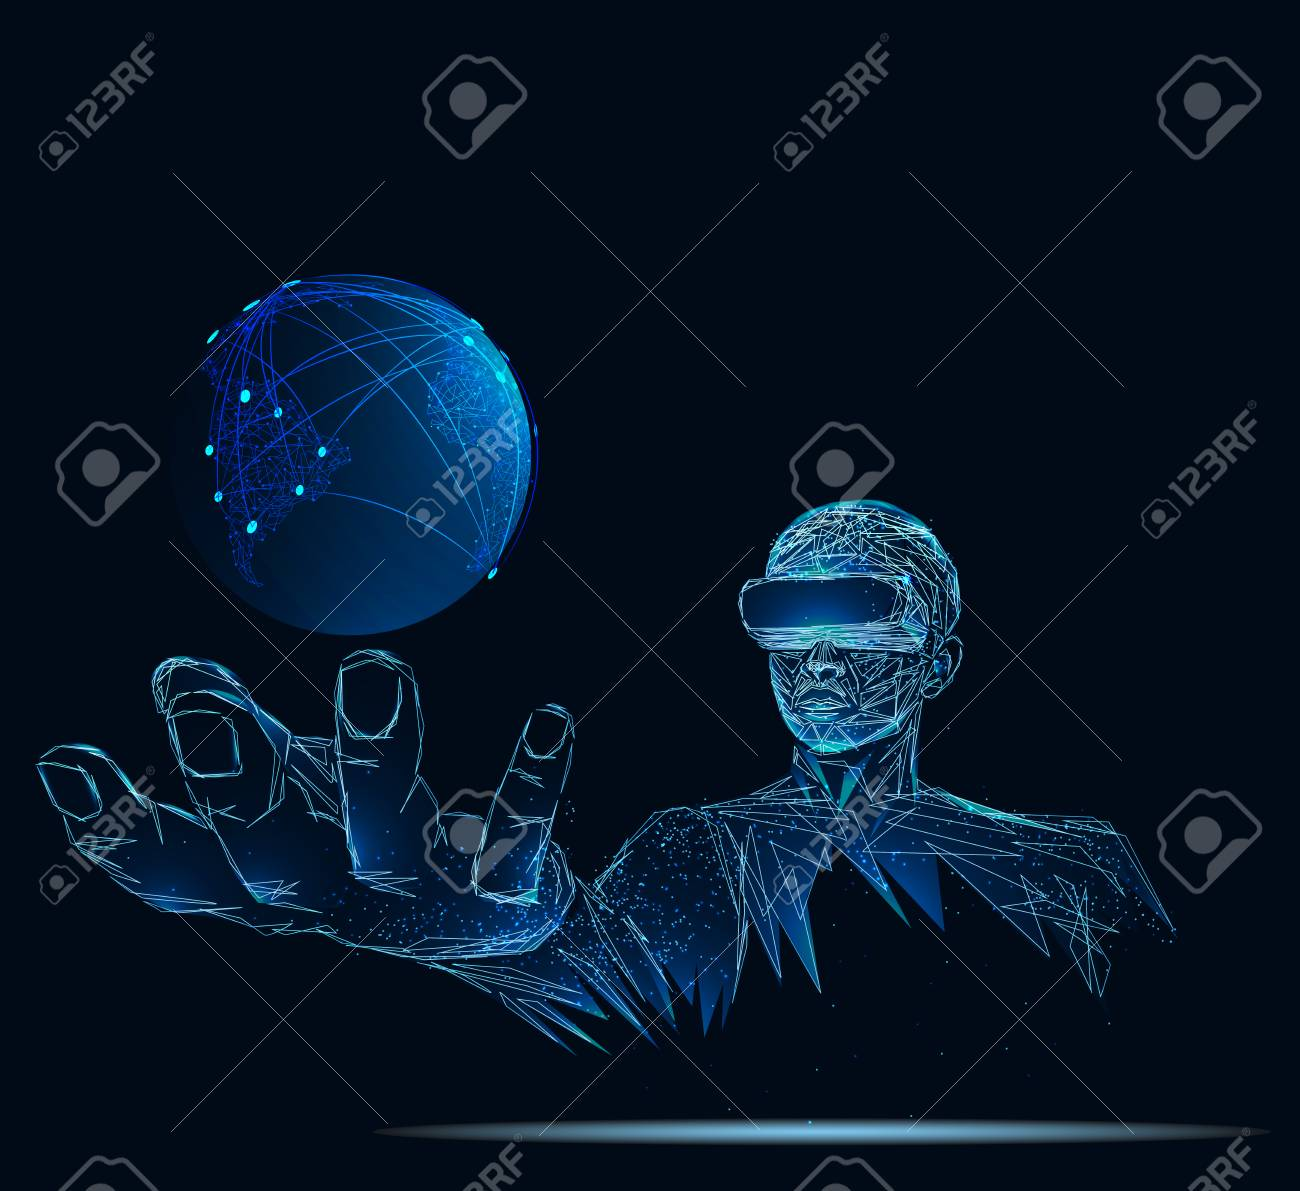 Earth globe against man executive using virtual reality simulator